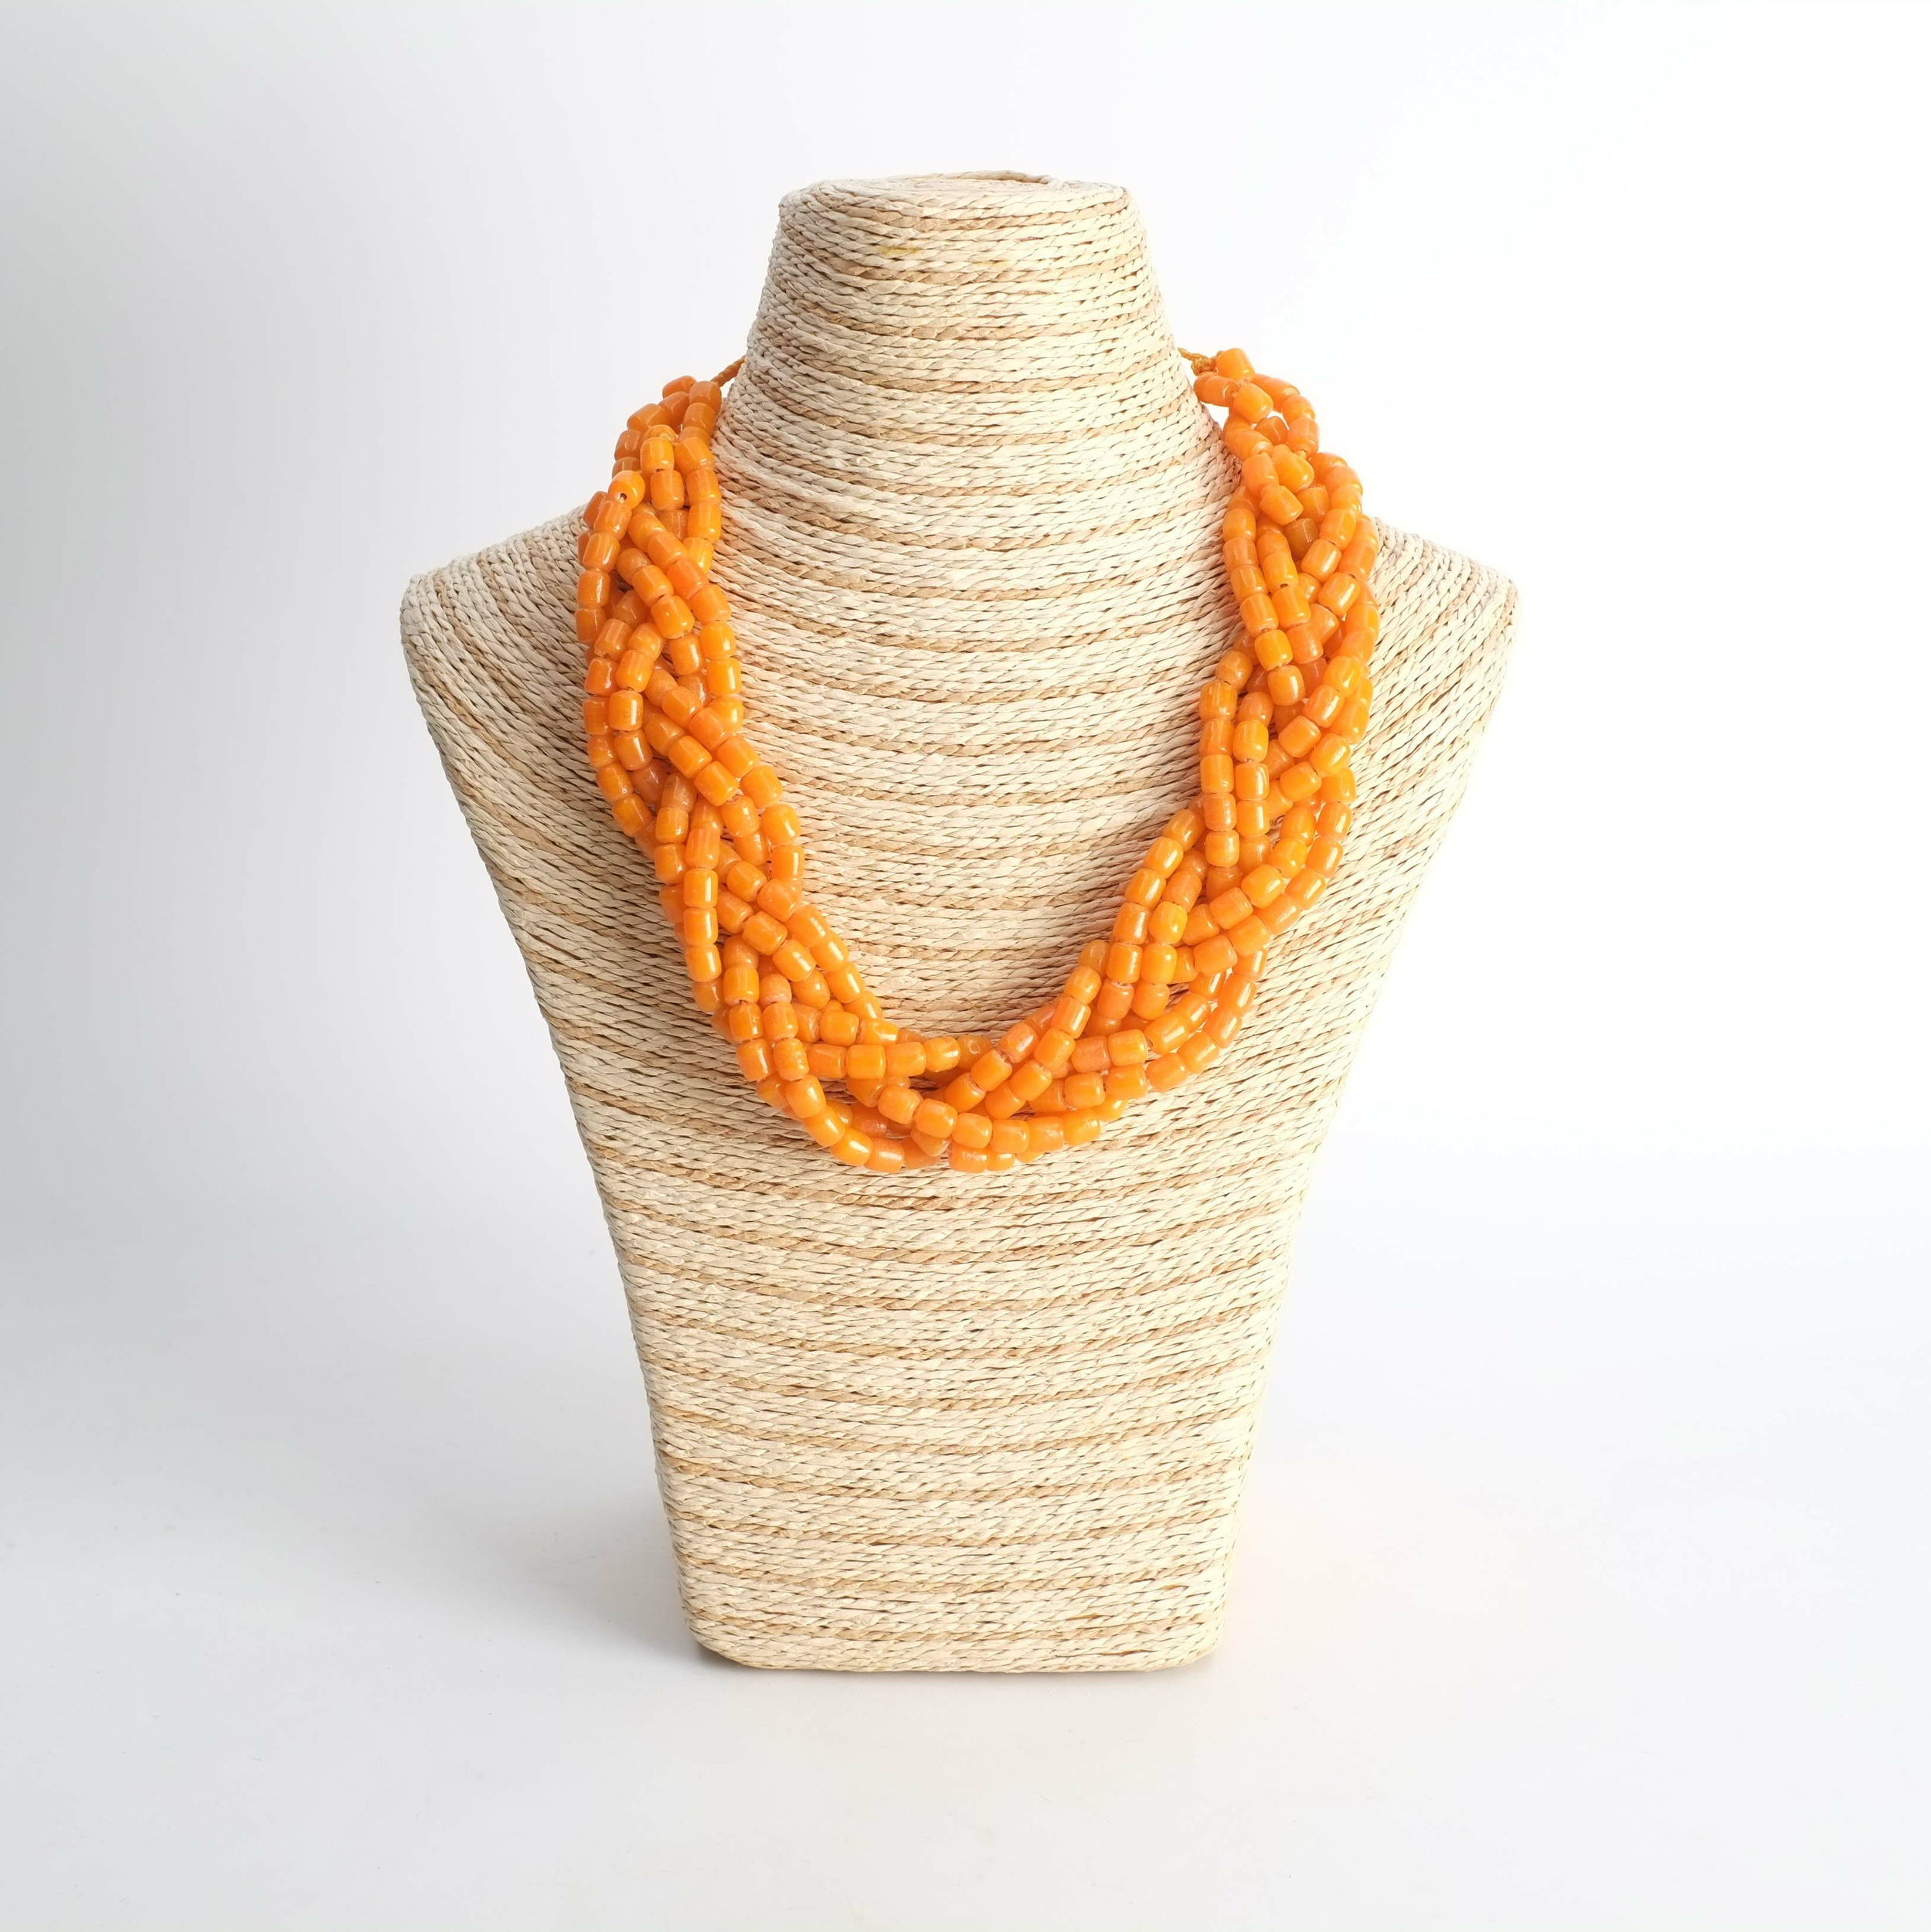 Collier en perle de verre orange du Sénégal